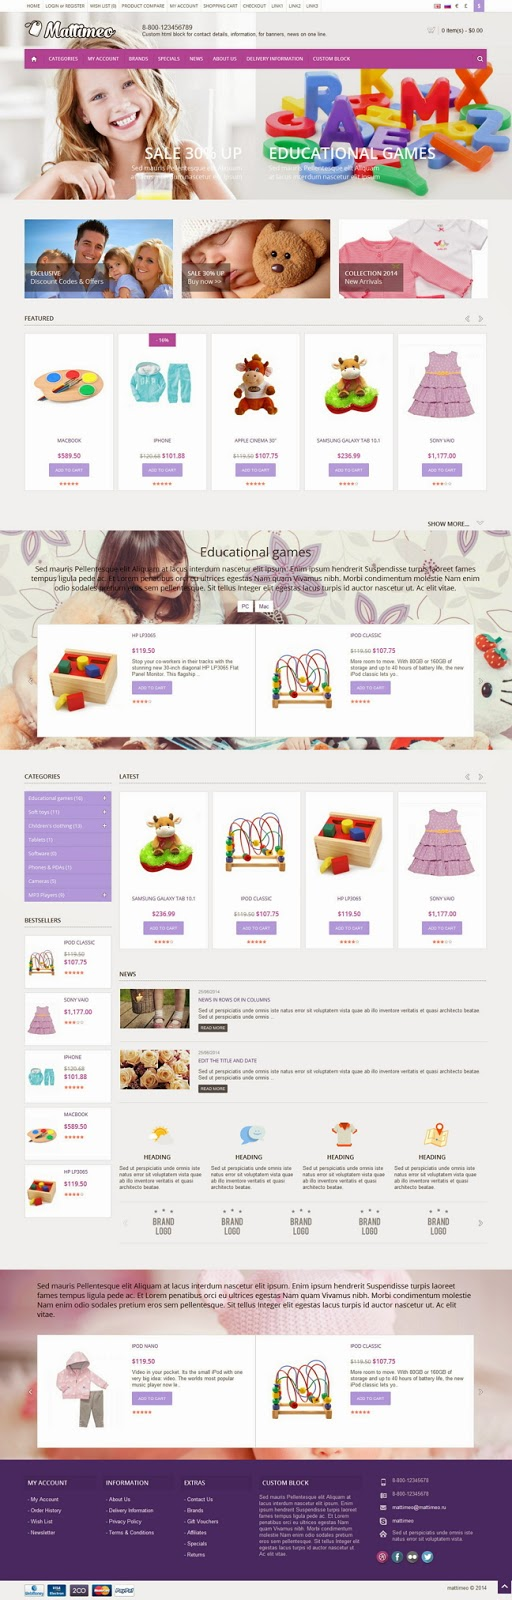 kides sotre website theme